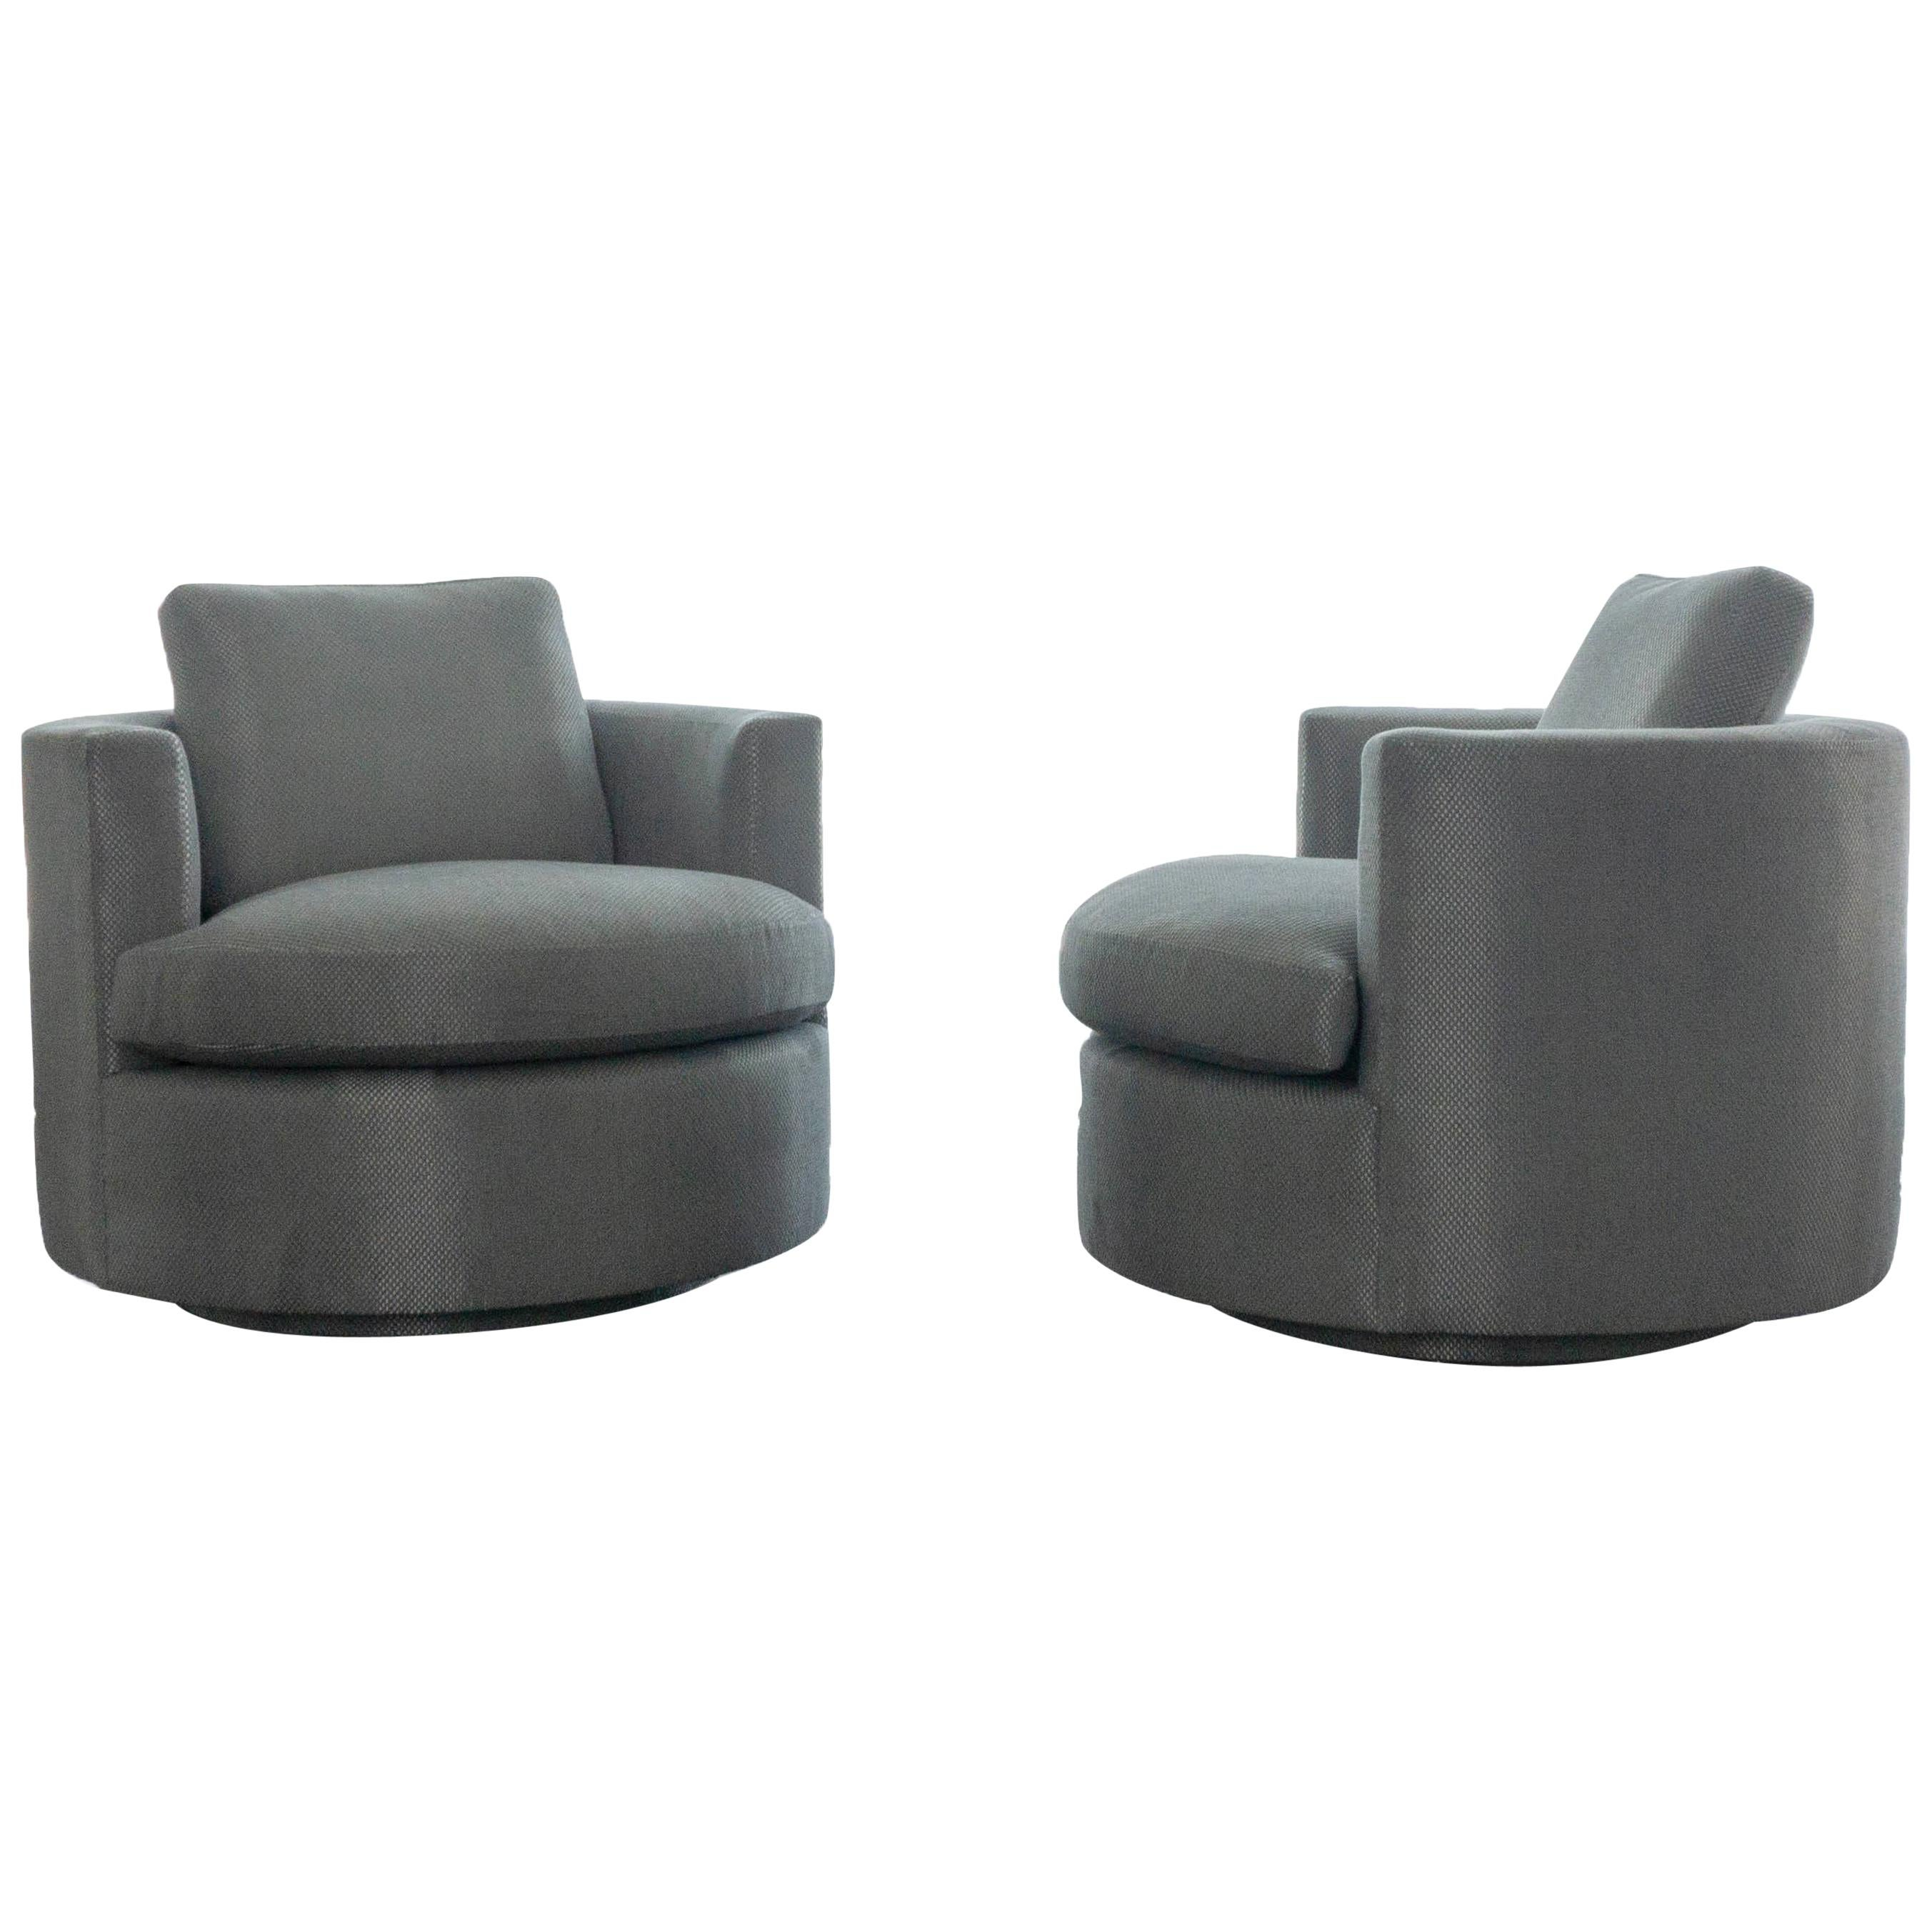 Modern Round Swivel Chair